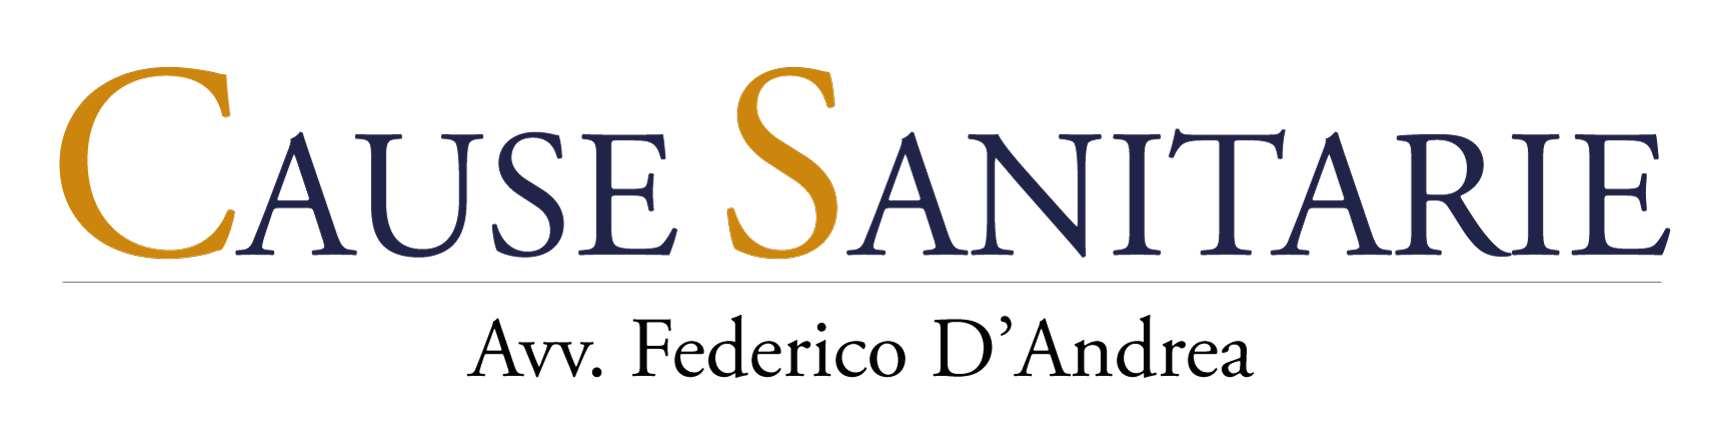 APP Web Agency - Cause Sanitarie Logo